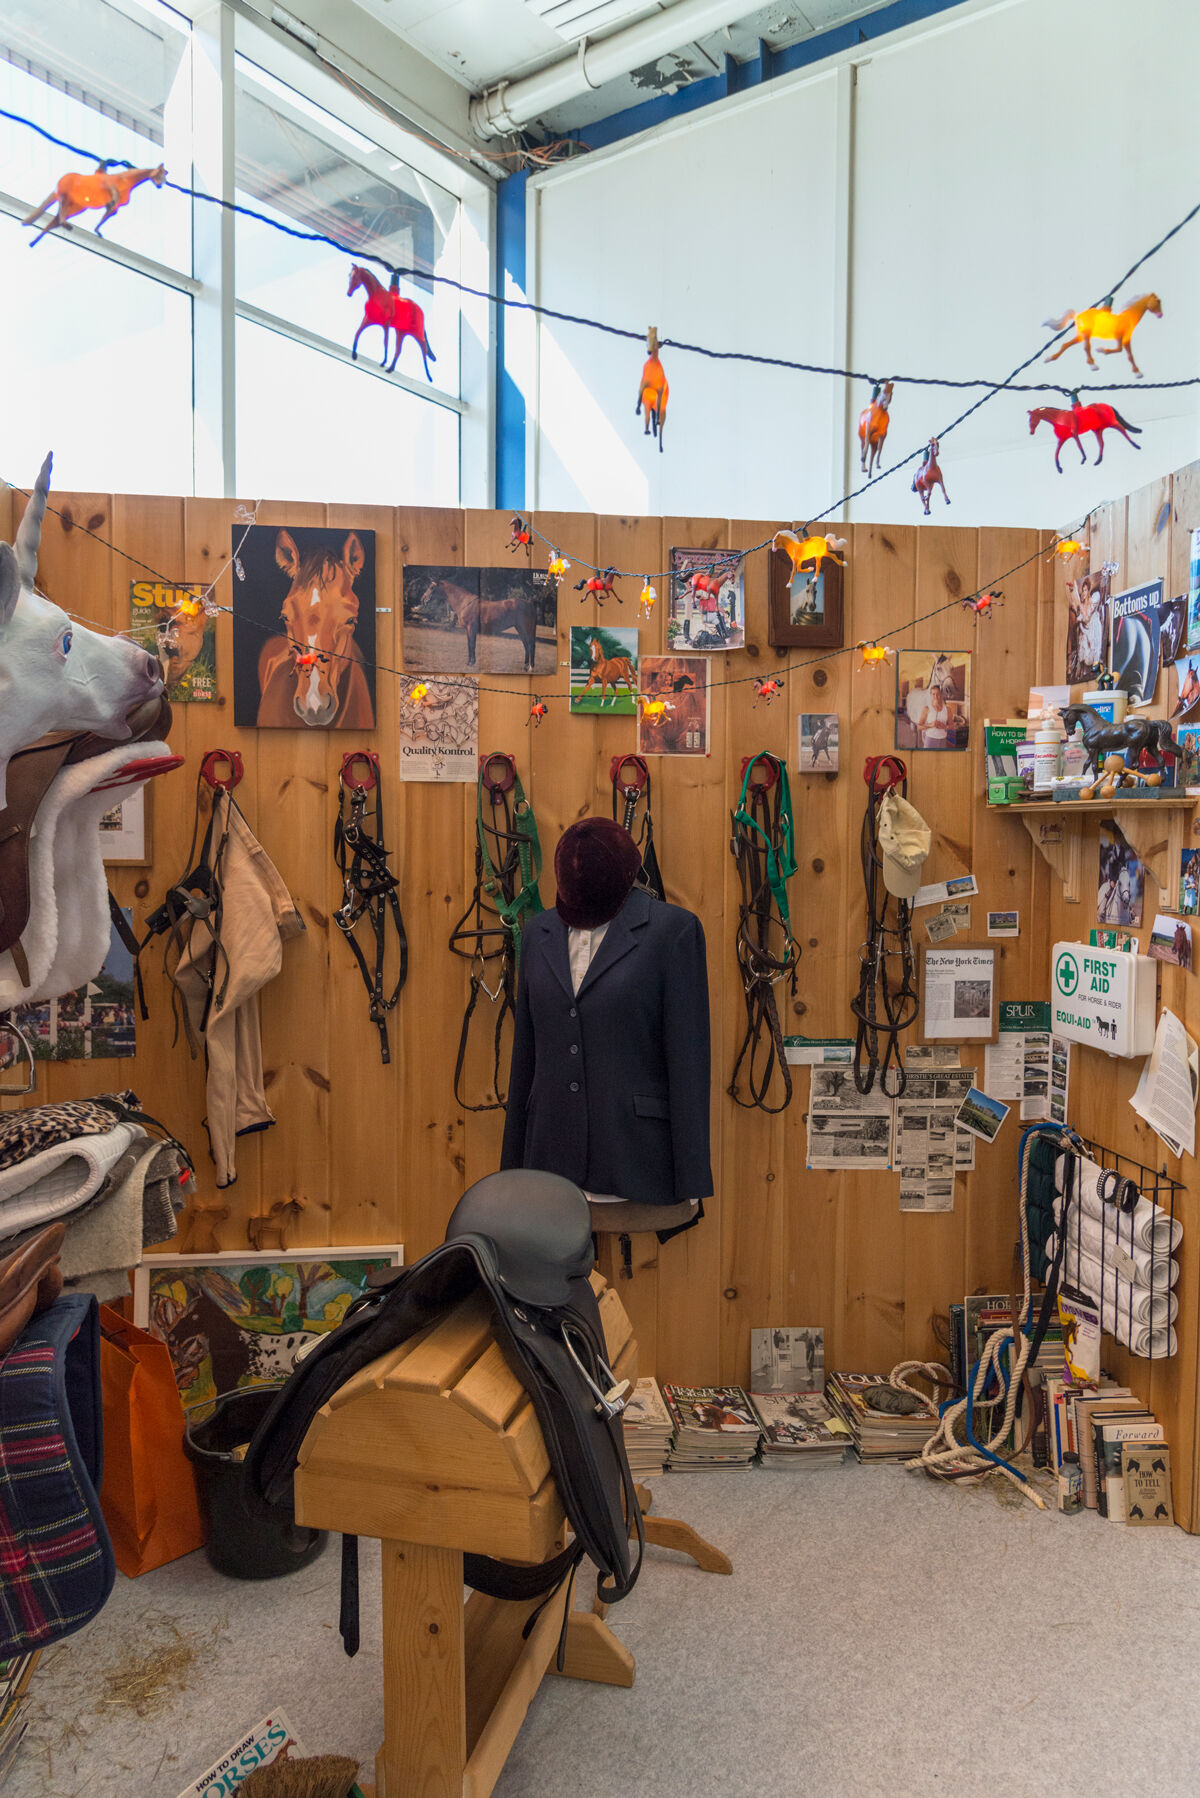 Installation view of Patricia Cronin, Tack Room, 1997–98, at The Armory Show, 2017. Photo by Adam Reich for Artsy.